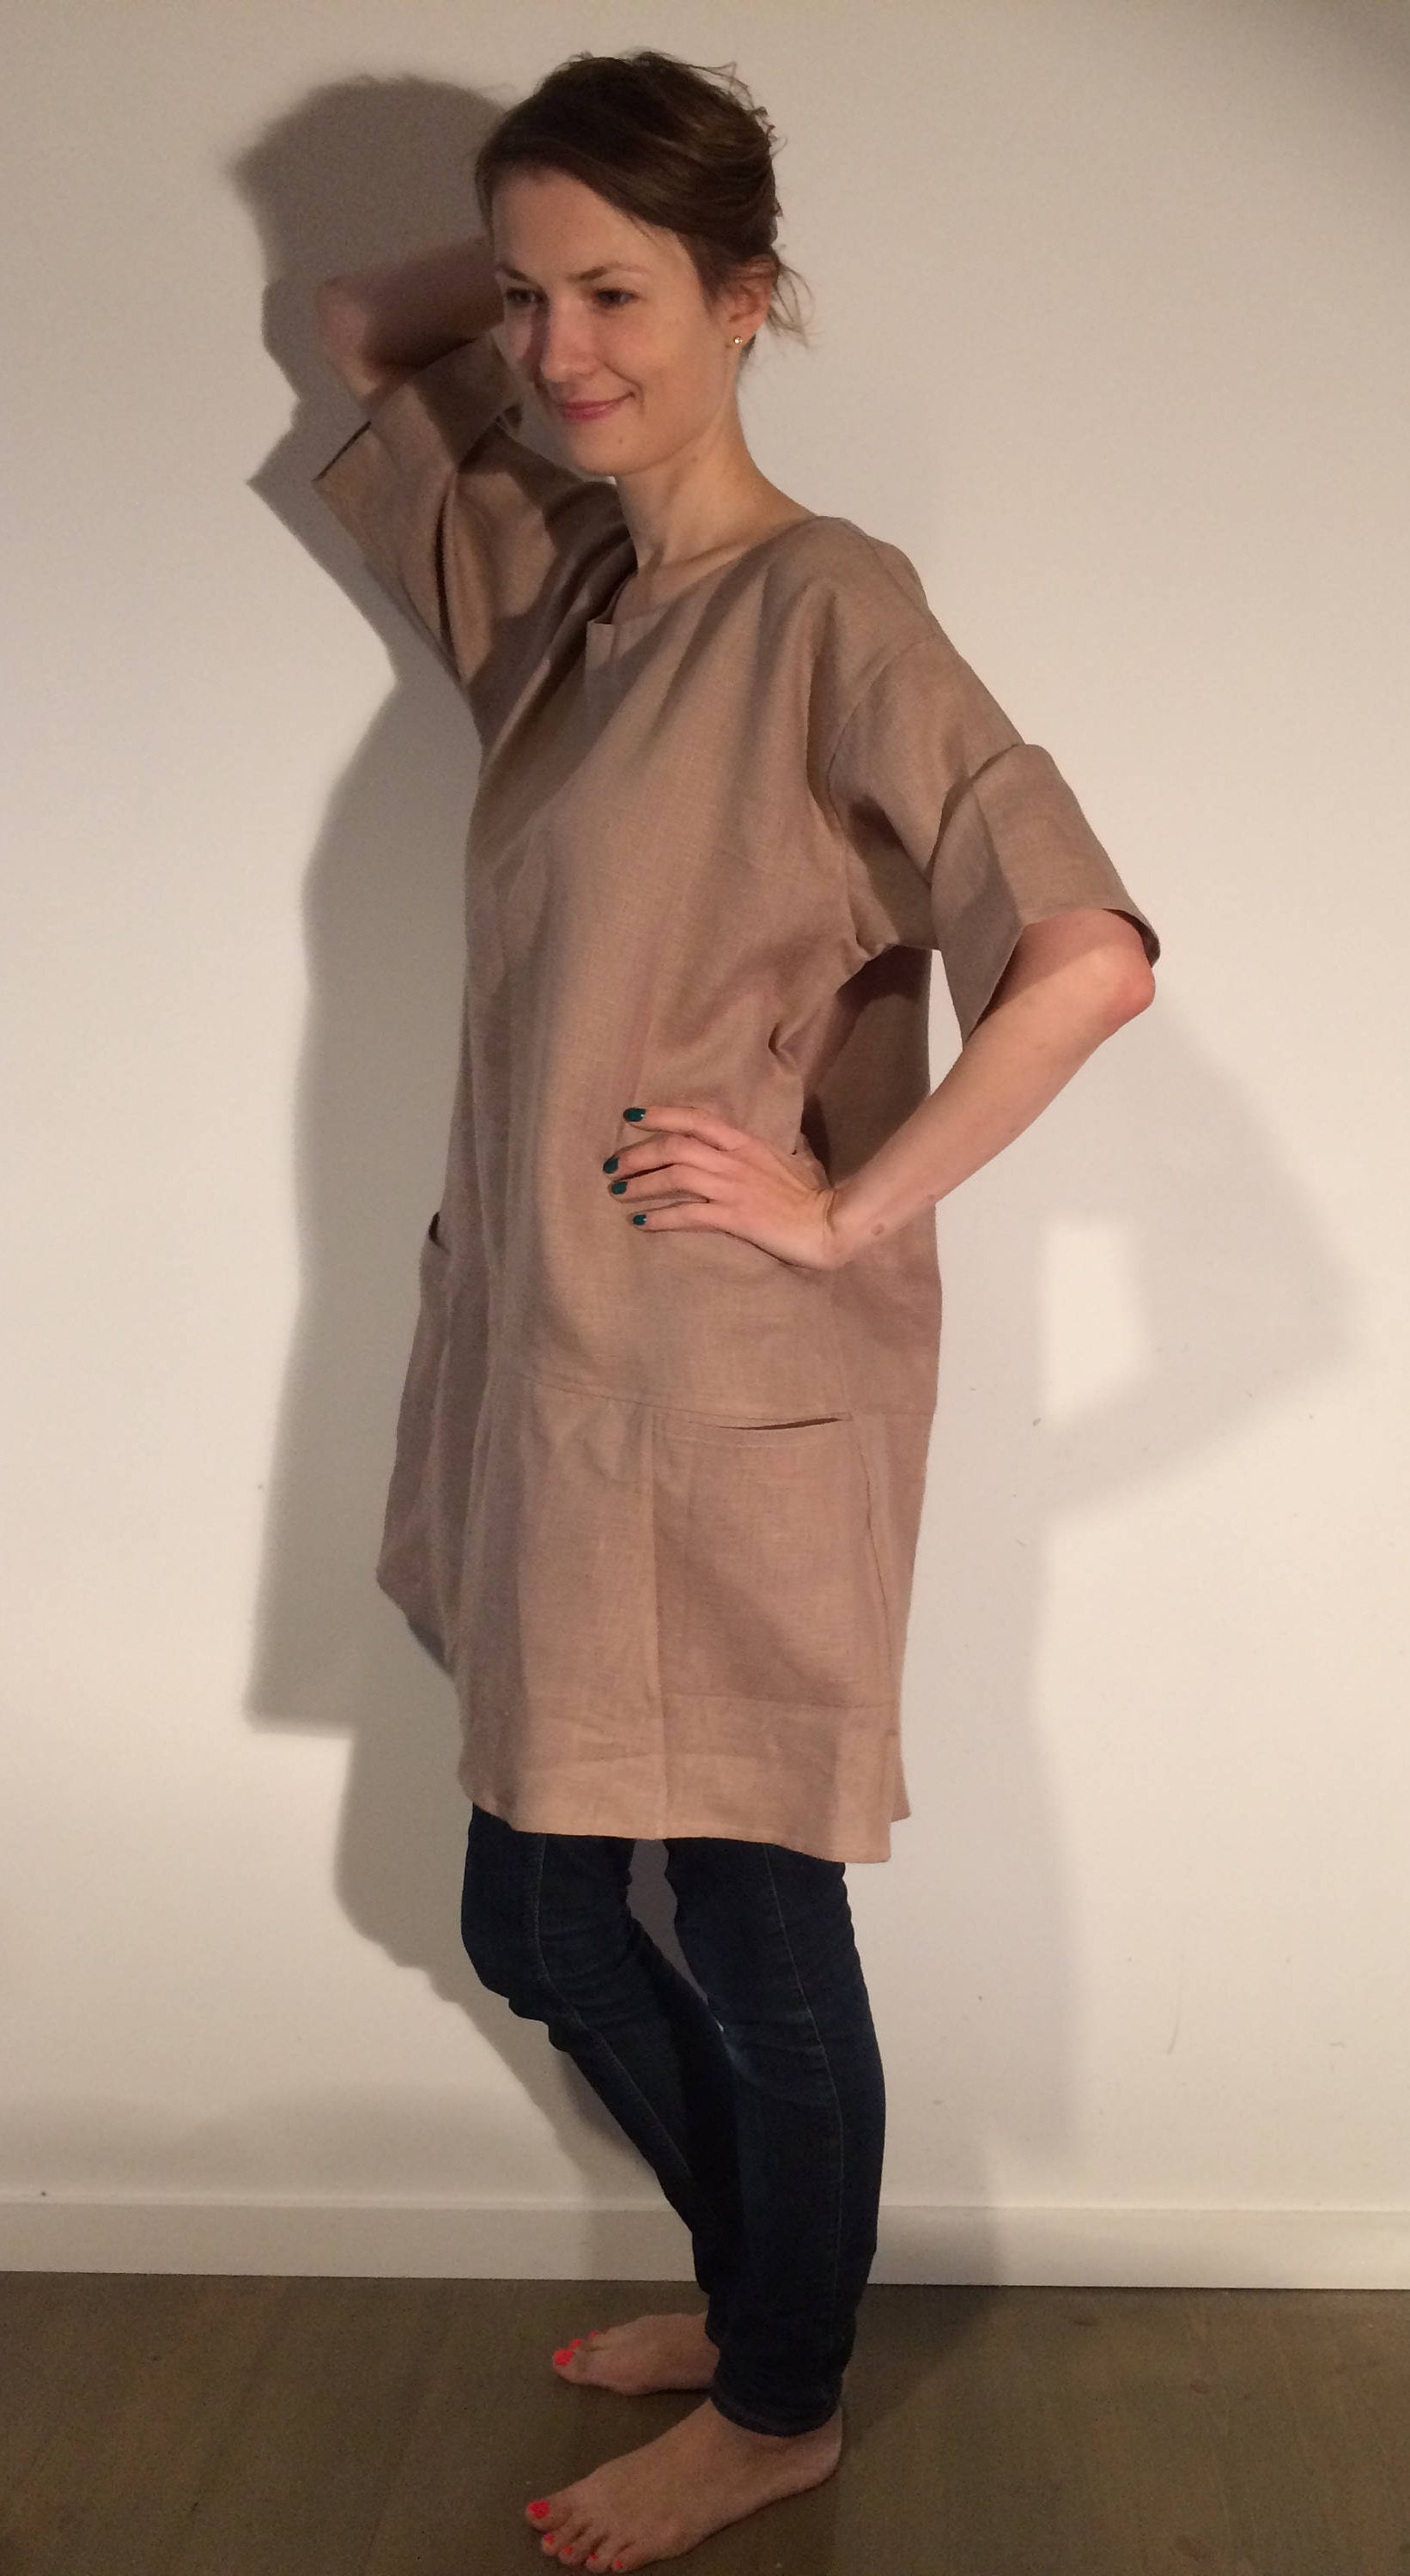 b30a156e8bd Tunic for Woman, Linen Tunic, Tunic with Pockets, Linen Shirt Woman ...